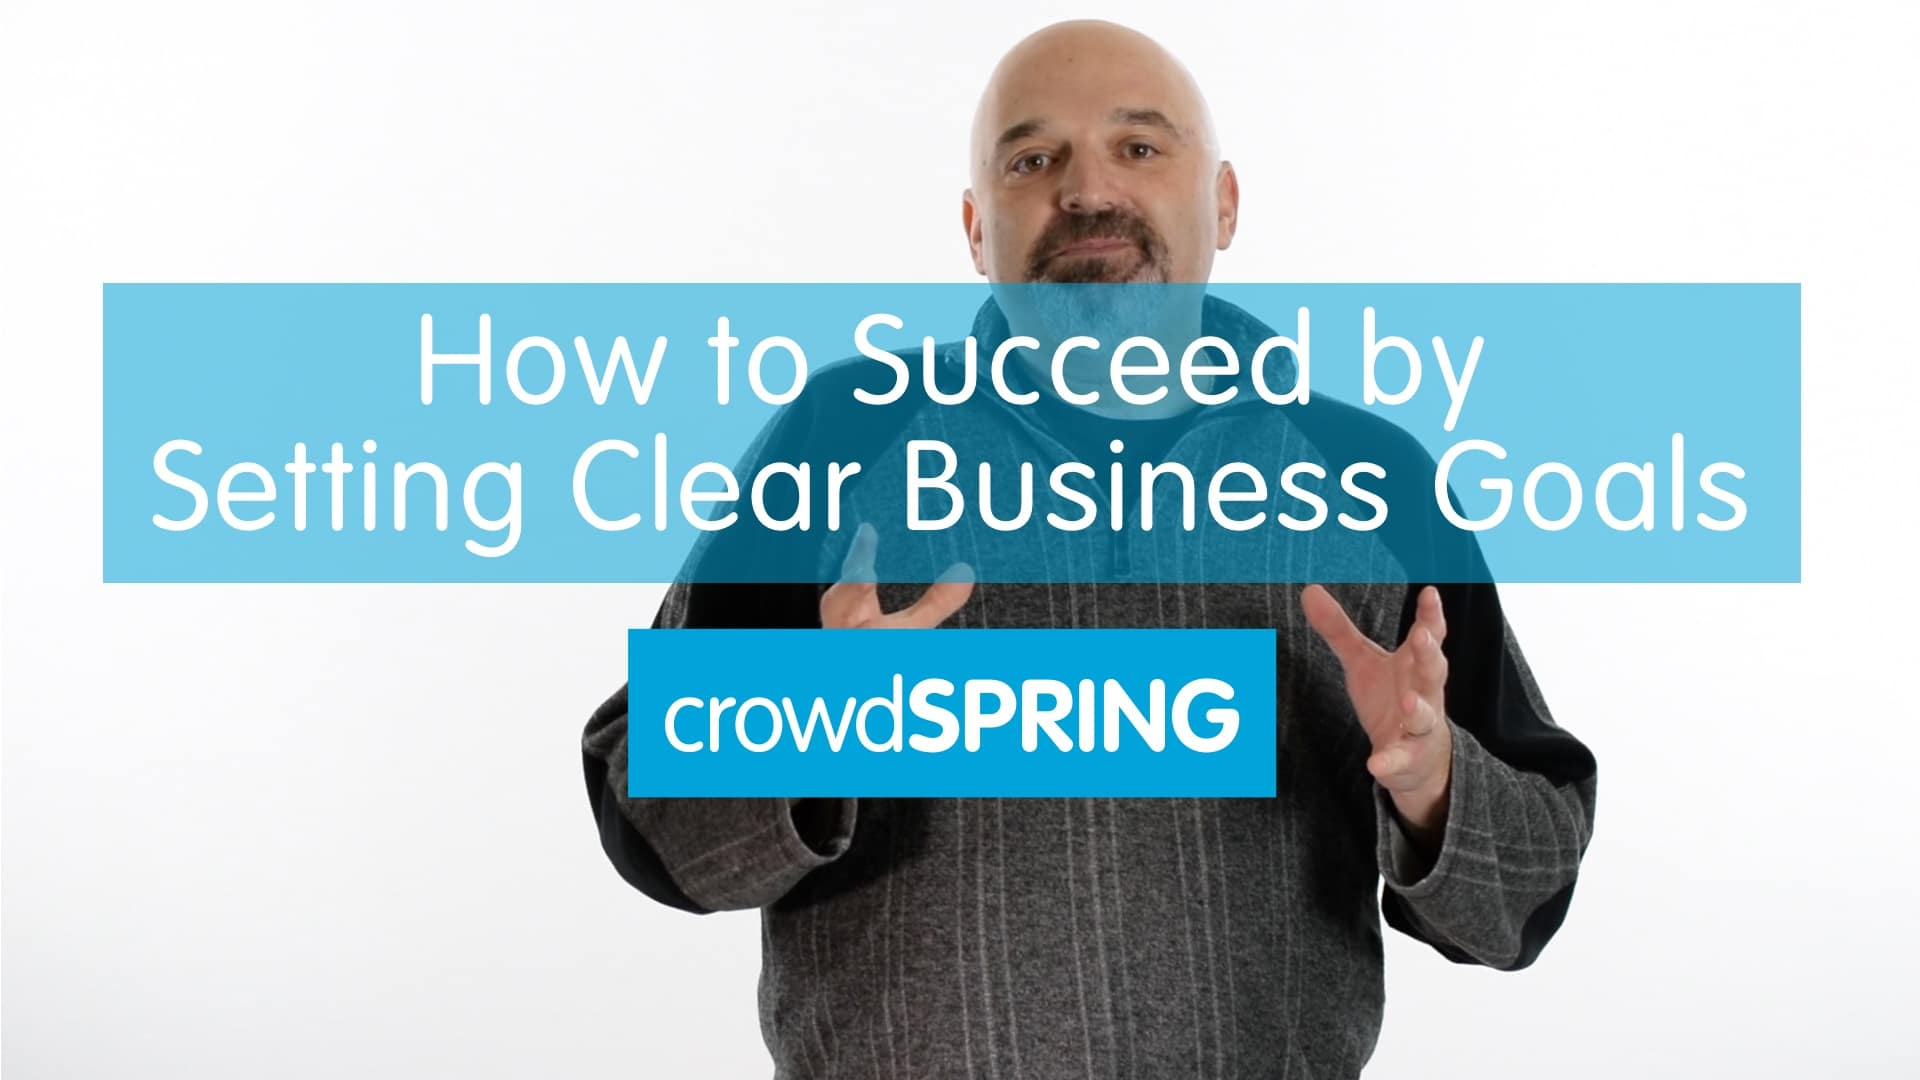 How to Succeed by Setting Clear Business Goals